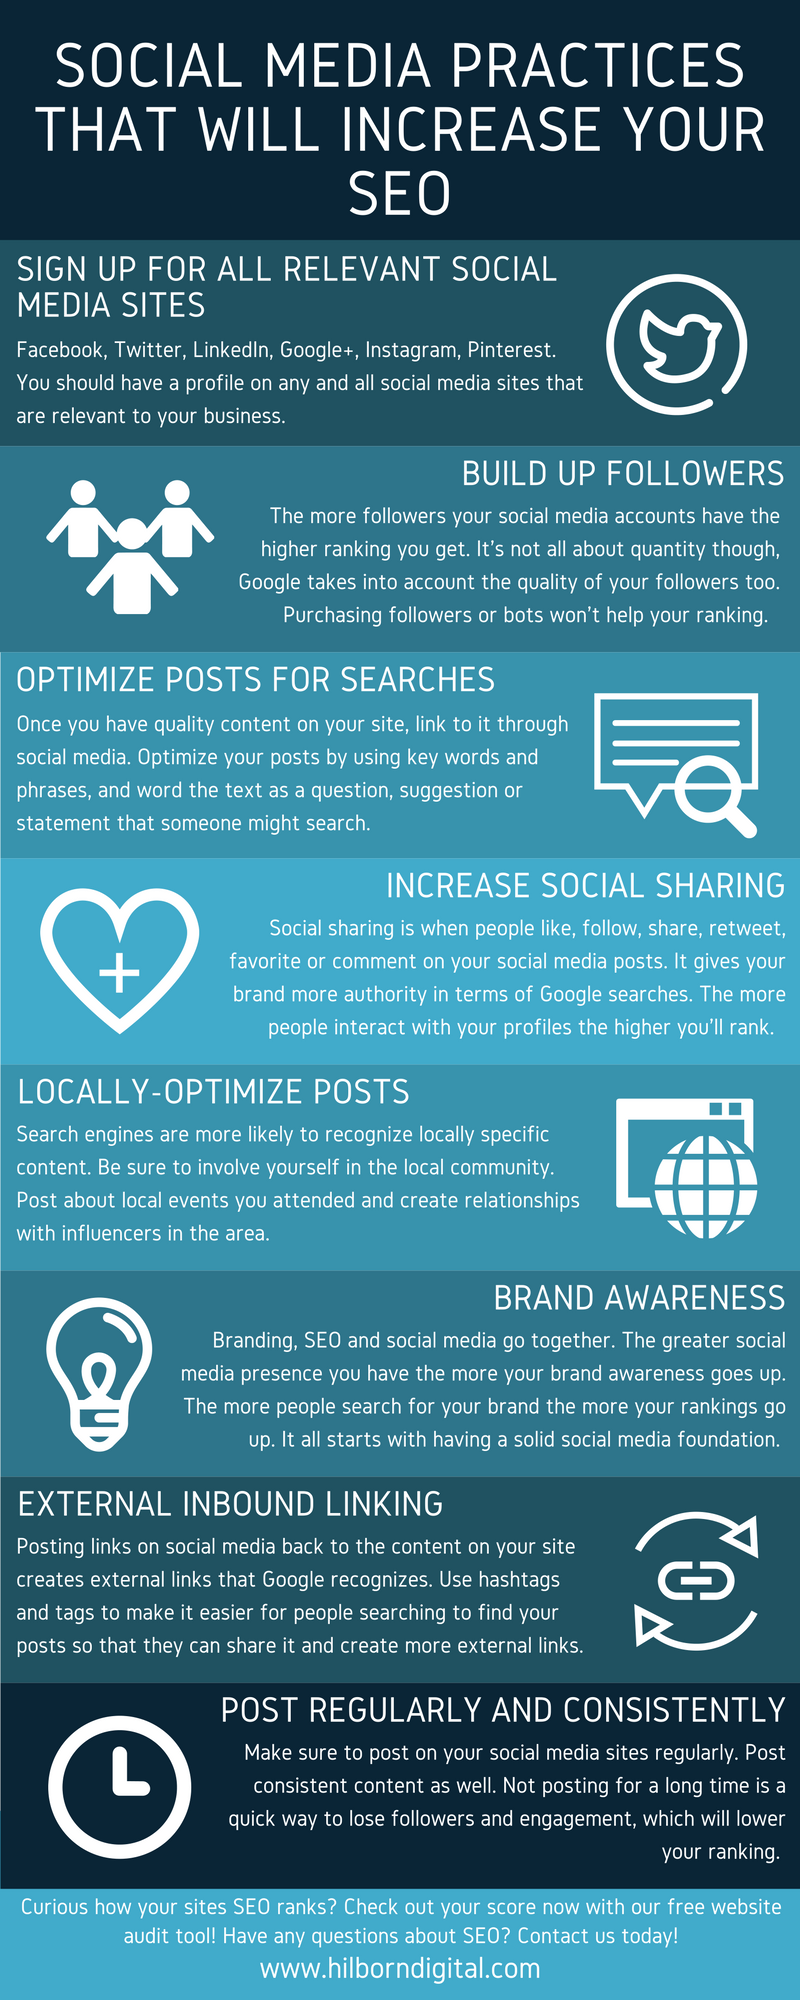 Social Media Practices That Will Increase Your SEO